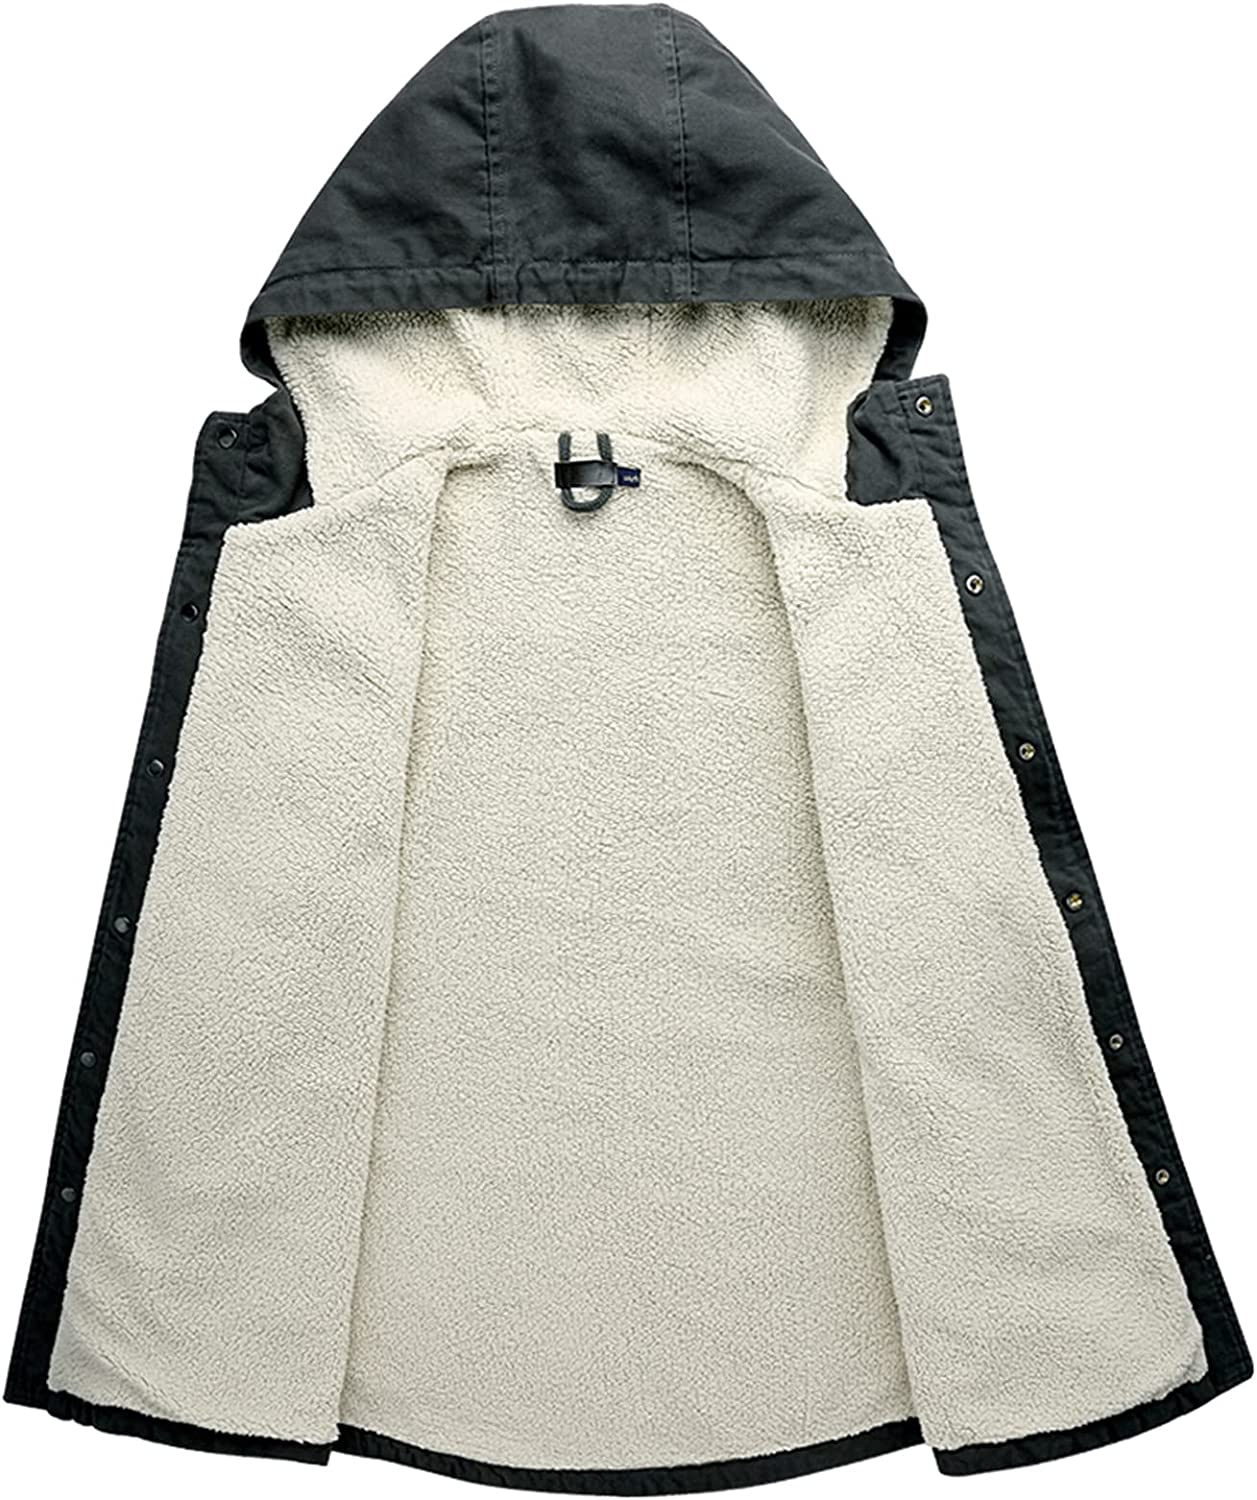 Winter Coat for Mens Big and Tall, Warm Cashmere Thicken Pockets Cotton Outwear Breathable Windproof Sports Jackets